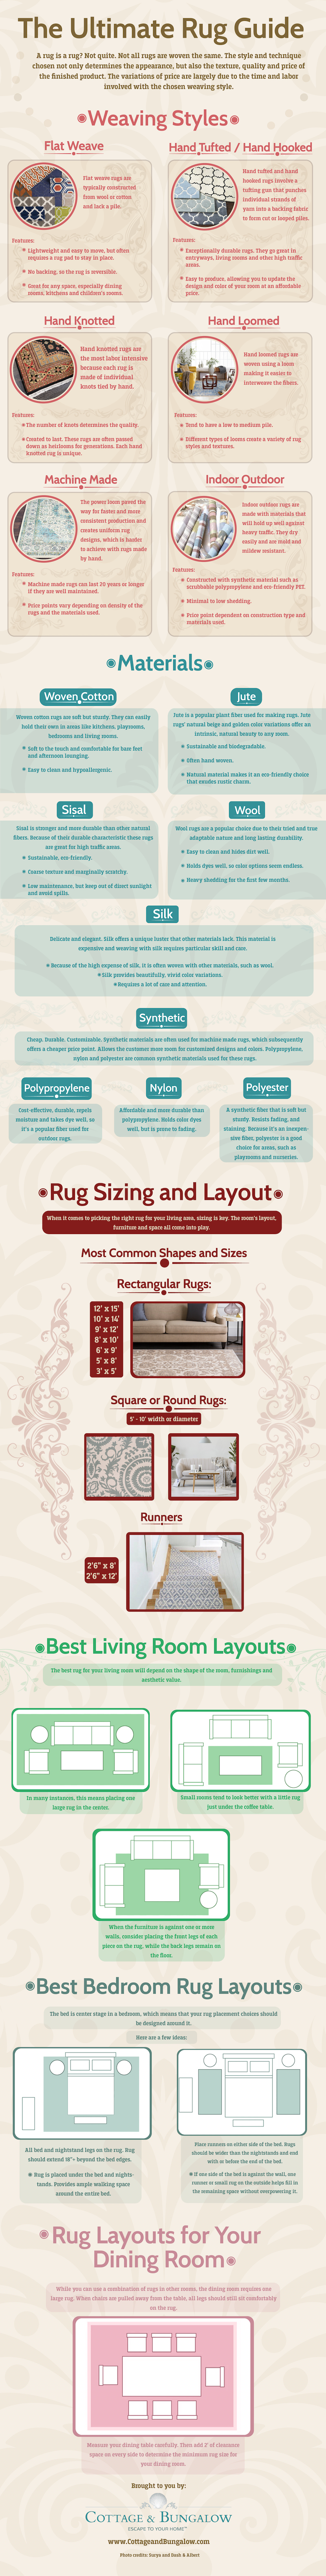 The Ultimate Guide: How to Choose a Rug